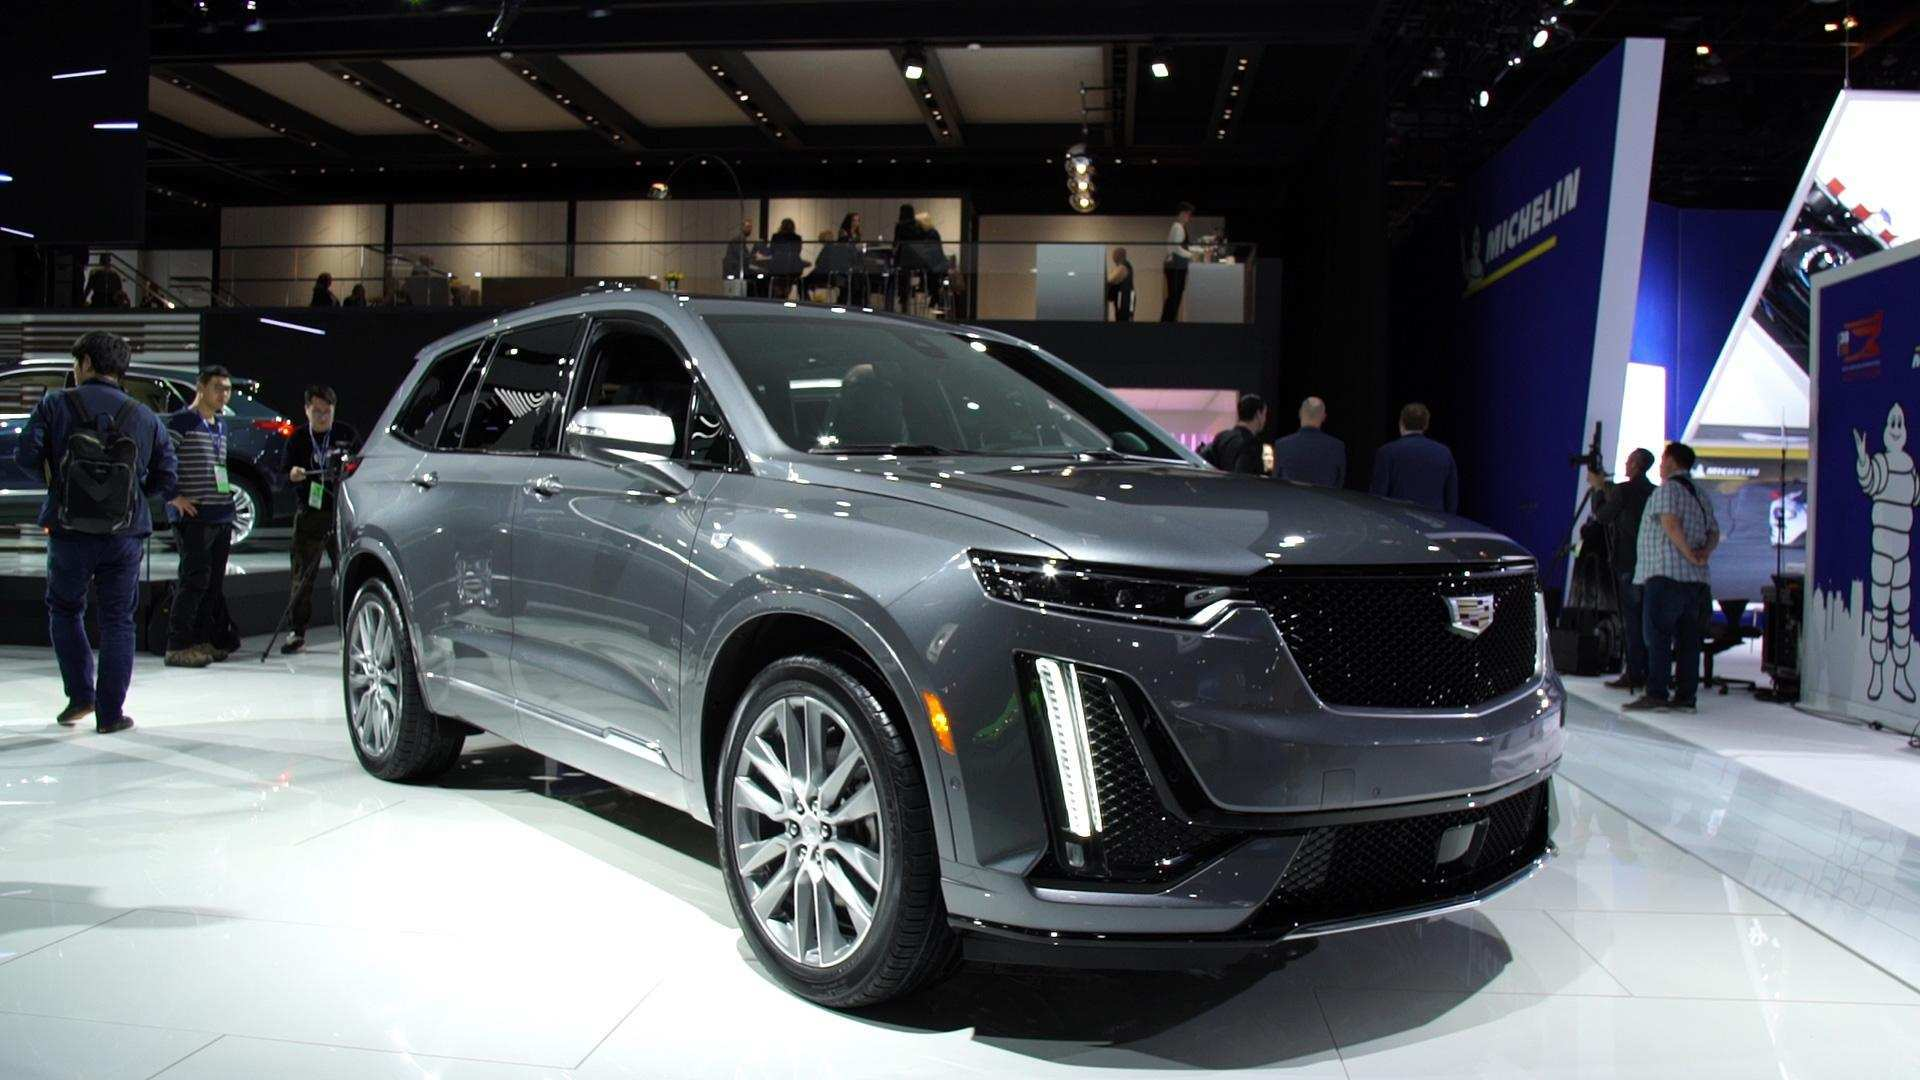 60 All New 2020 Acura Mdx Detroit Auto Show Pricing by 2020 Acura Mdx Detroit Auto Show